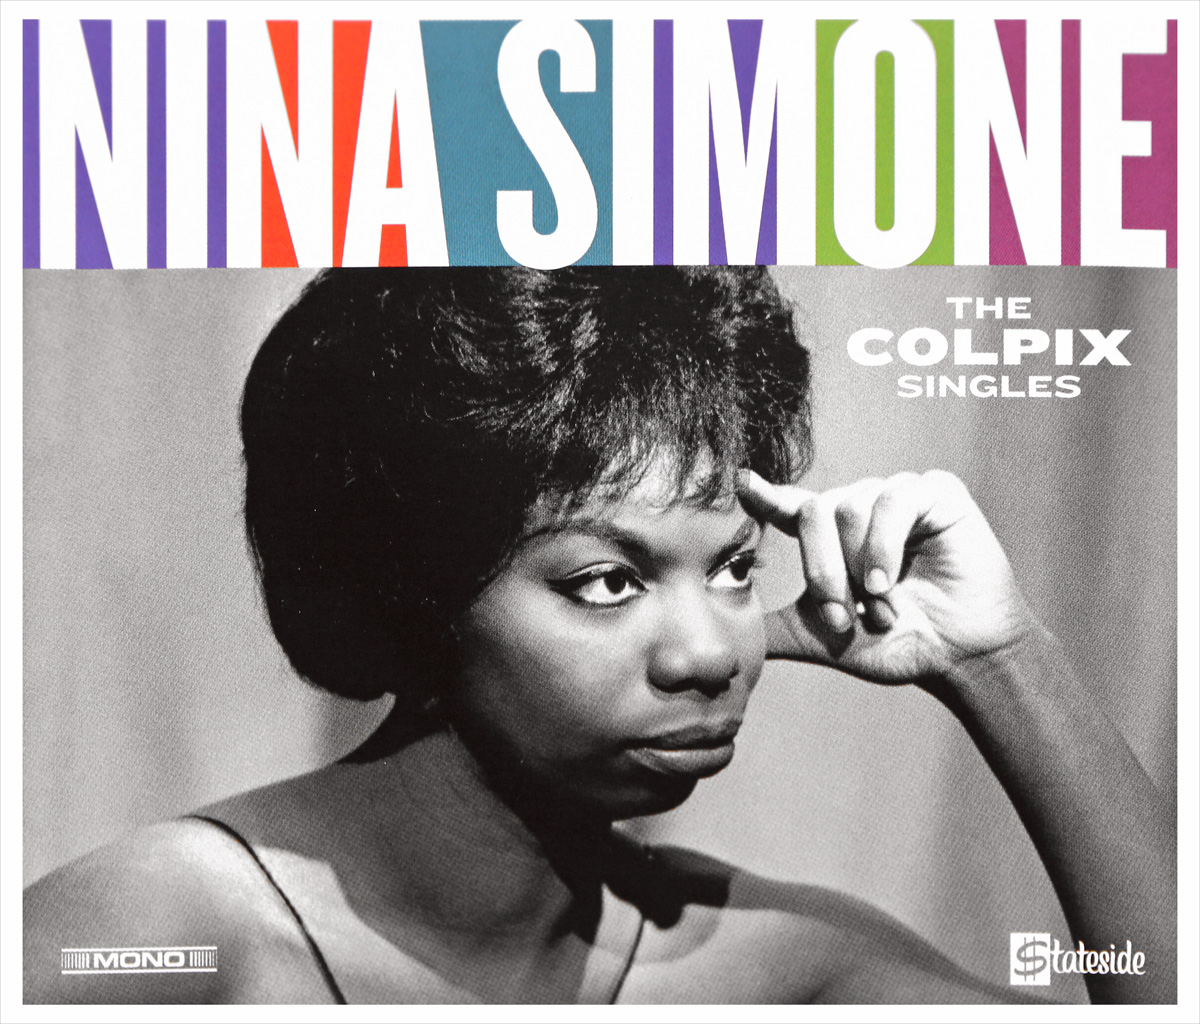 Нина Симон Nina Simone. The Colpix Singles (2 CD) нина симон nina simone nina simone and piano lp